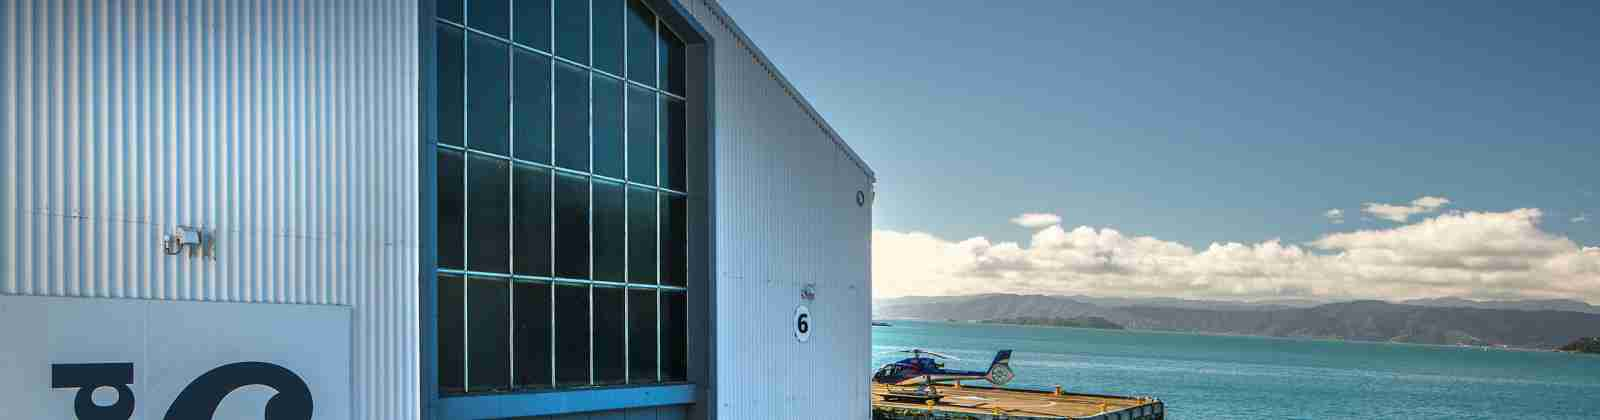 Shed 6 exterior looking out to Wellignton Harbour images Andy Spain